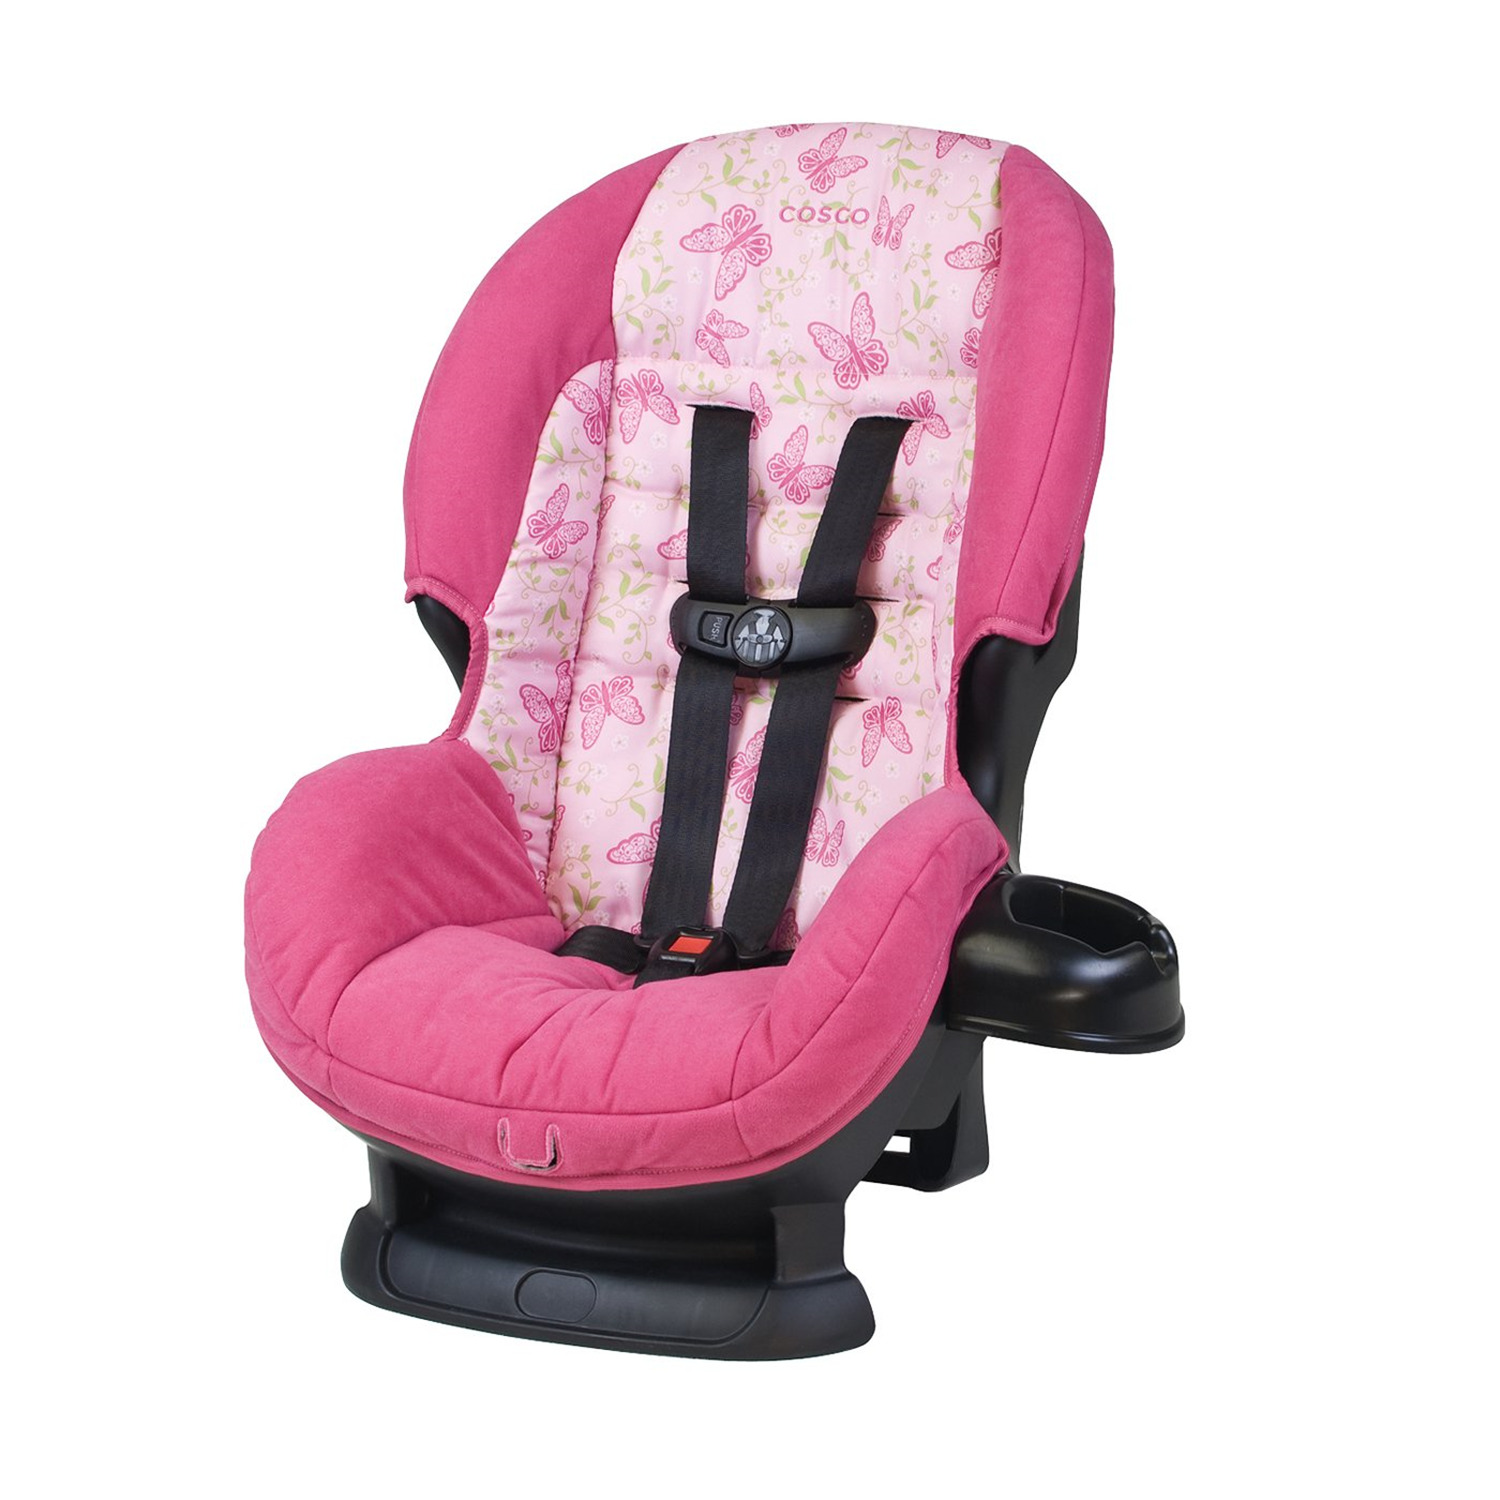 cosco cosco scenera convertible car seat butterfly dreams by oj commerce 22197adq. Black Bedroom Furniture Sets. Home Design Ideas